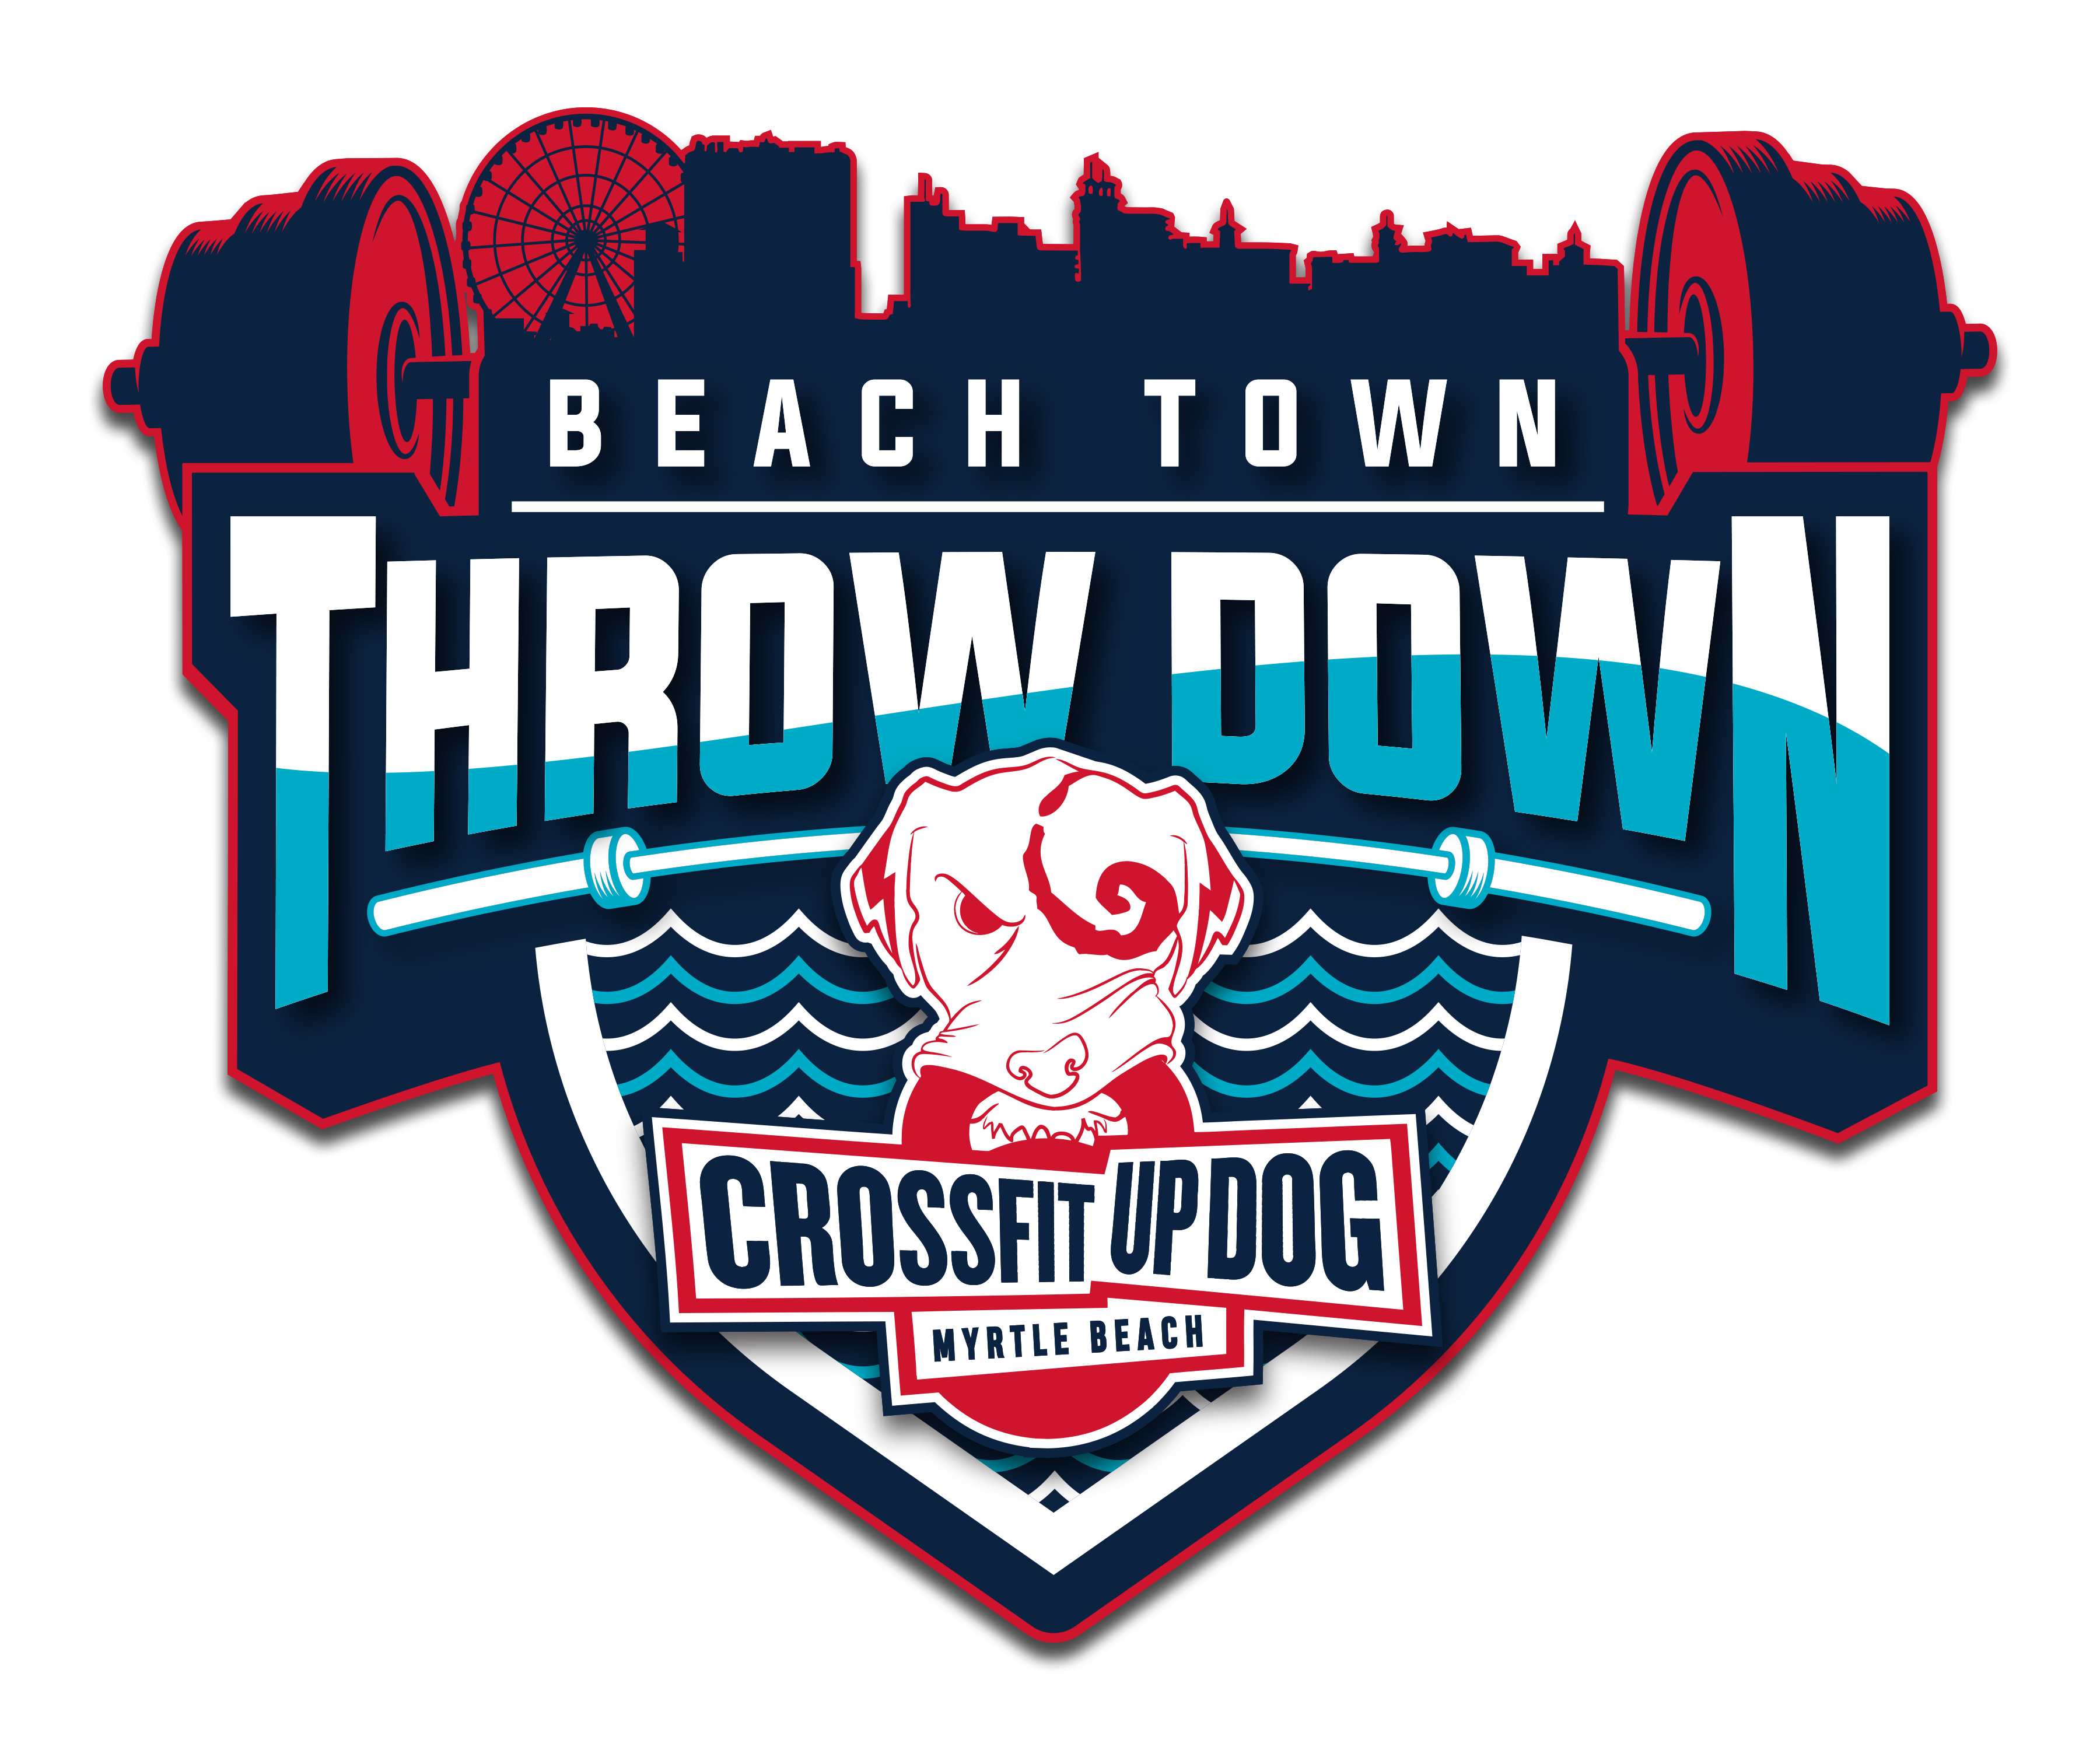 Crossfit up dog beach town throw down « the garage games